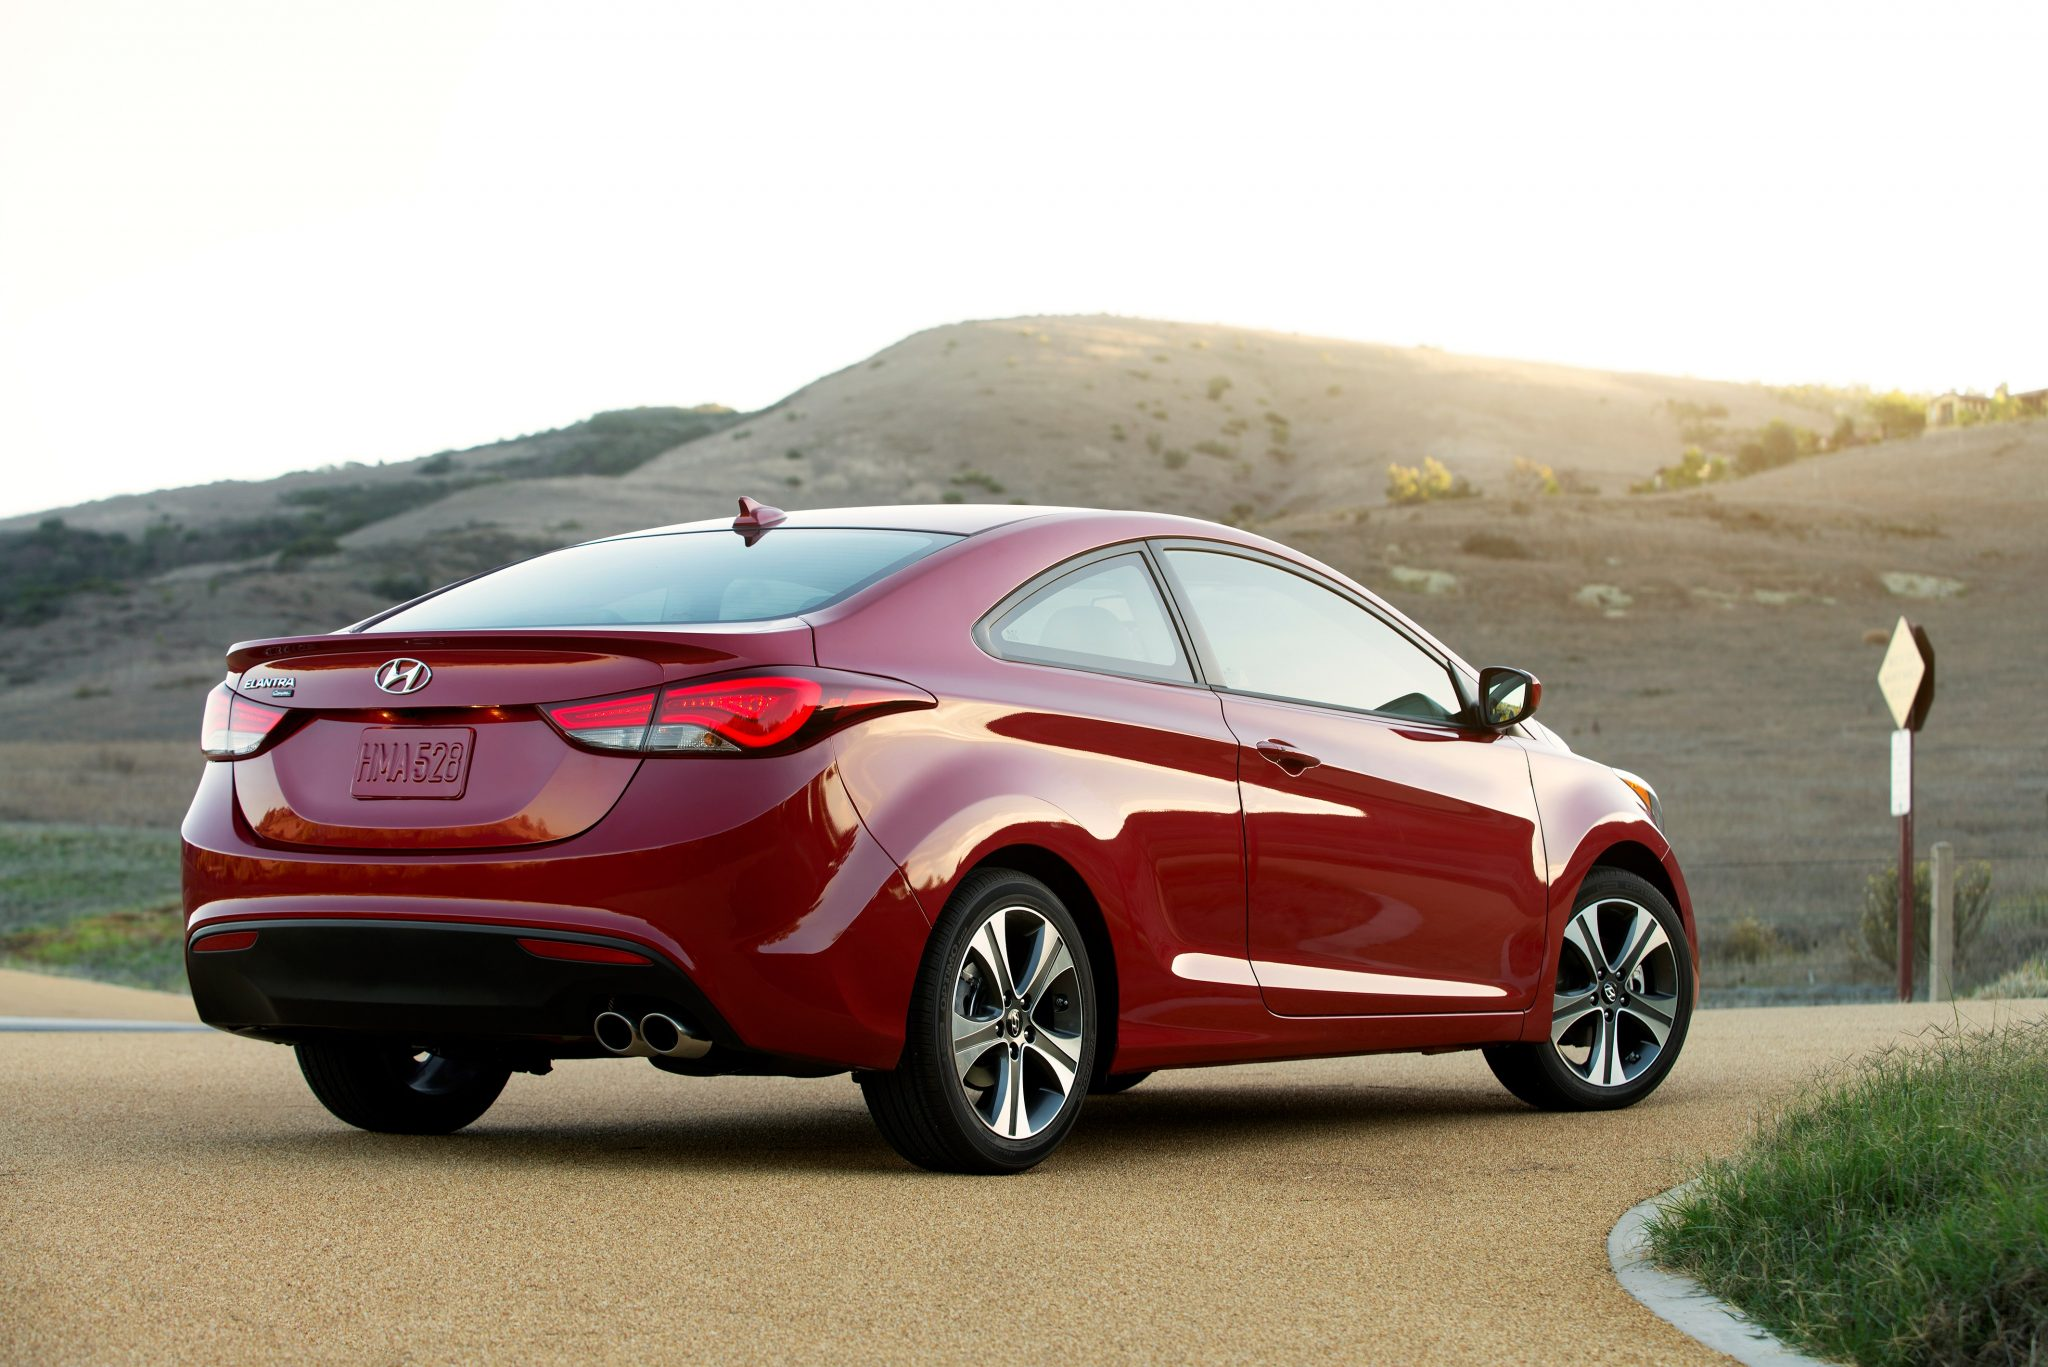 Difference Between Coupe And Sedan >> 2015 Hyundai Elantra Configurator Reveals No Coupe Option ...